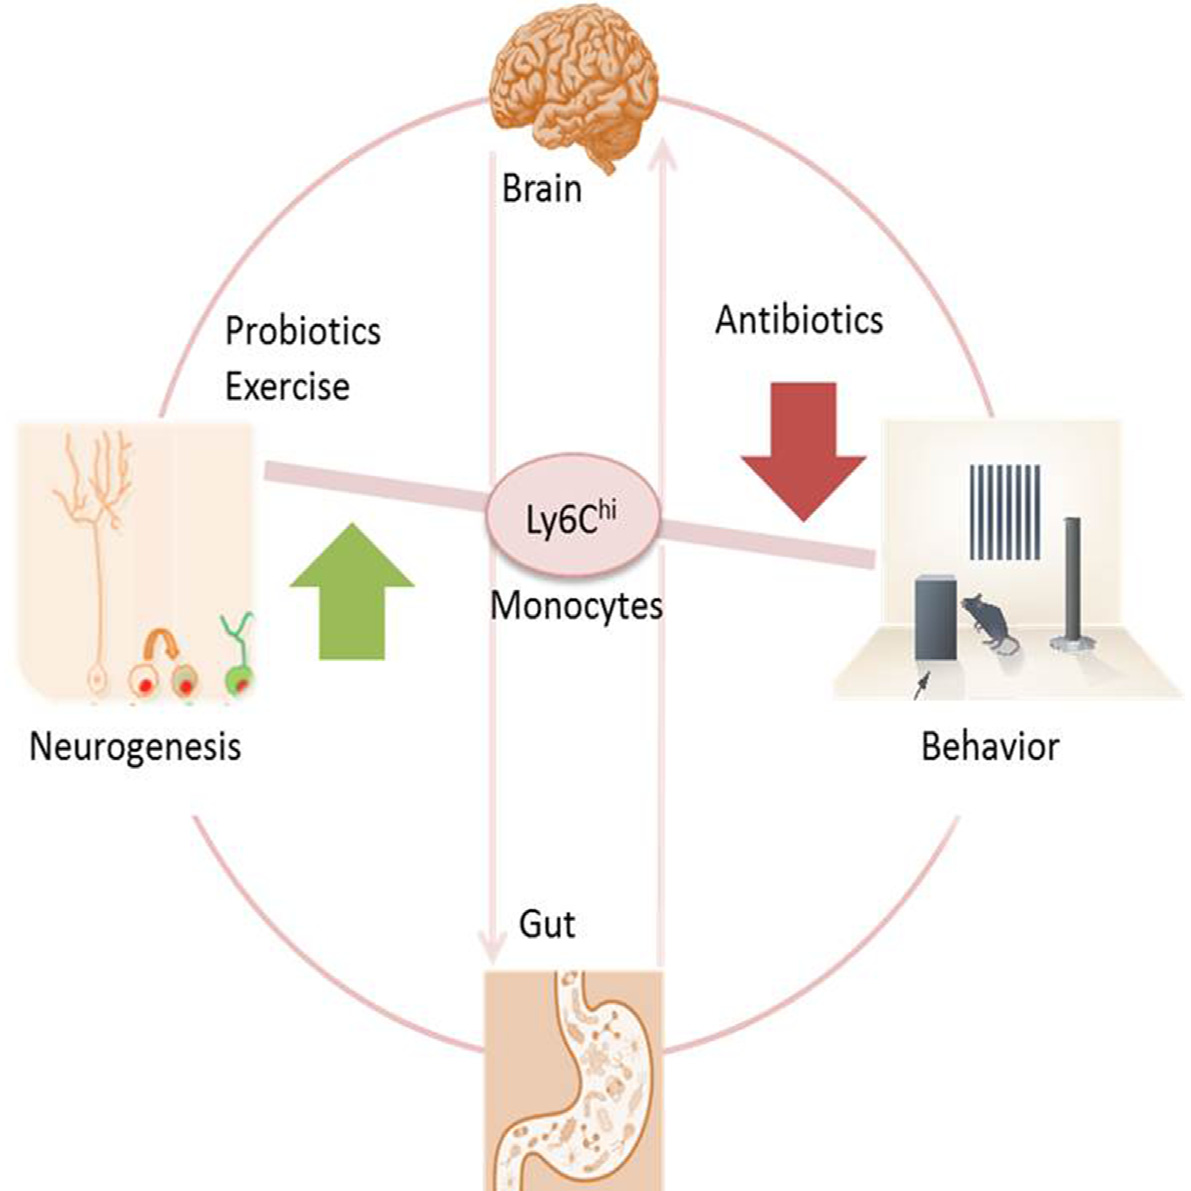 Mouse Study Finds Link Between Gut Bacteria And Neurogenesis